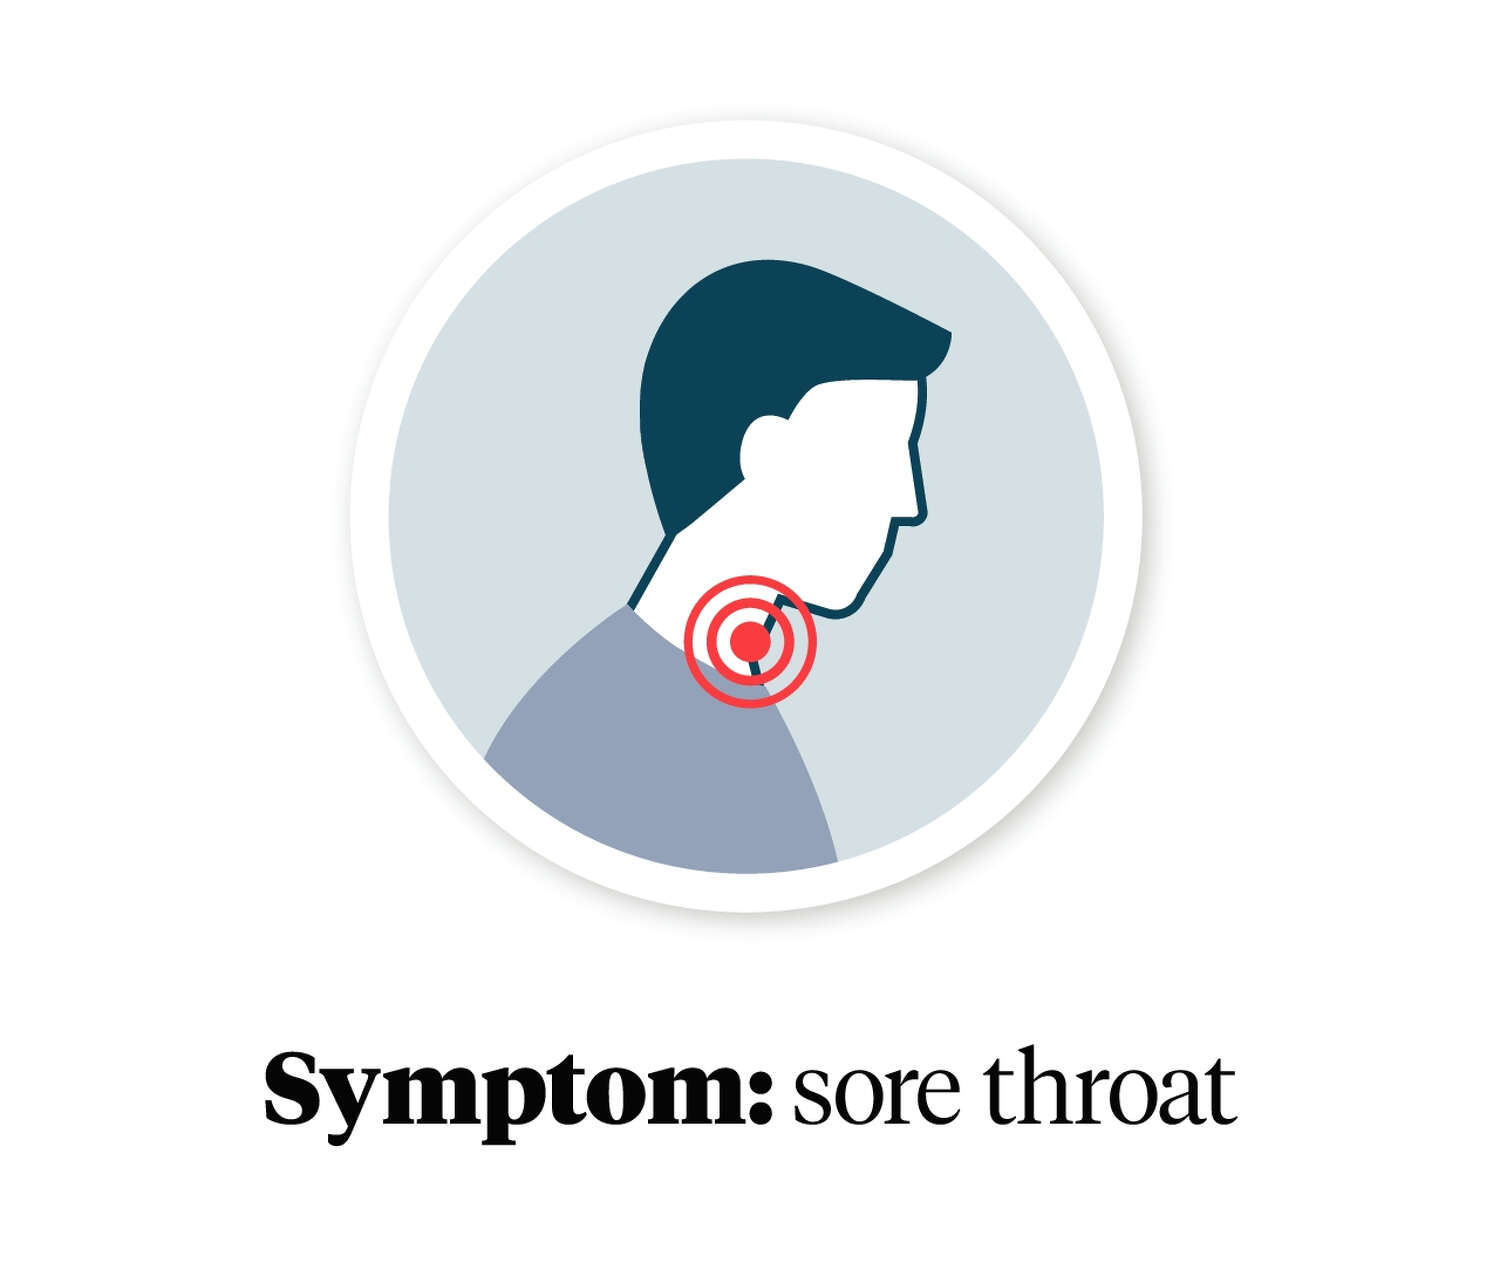 Graphic showing a person with a sore throat